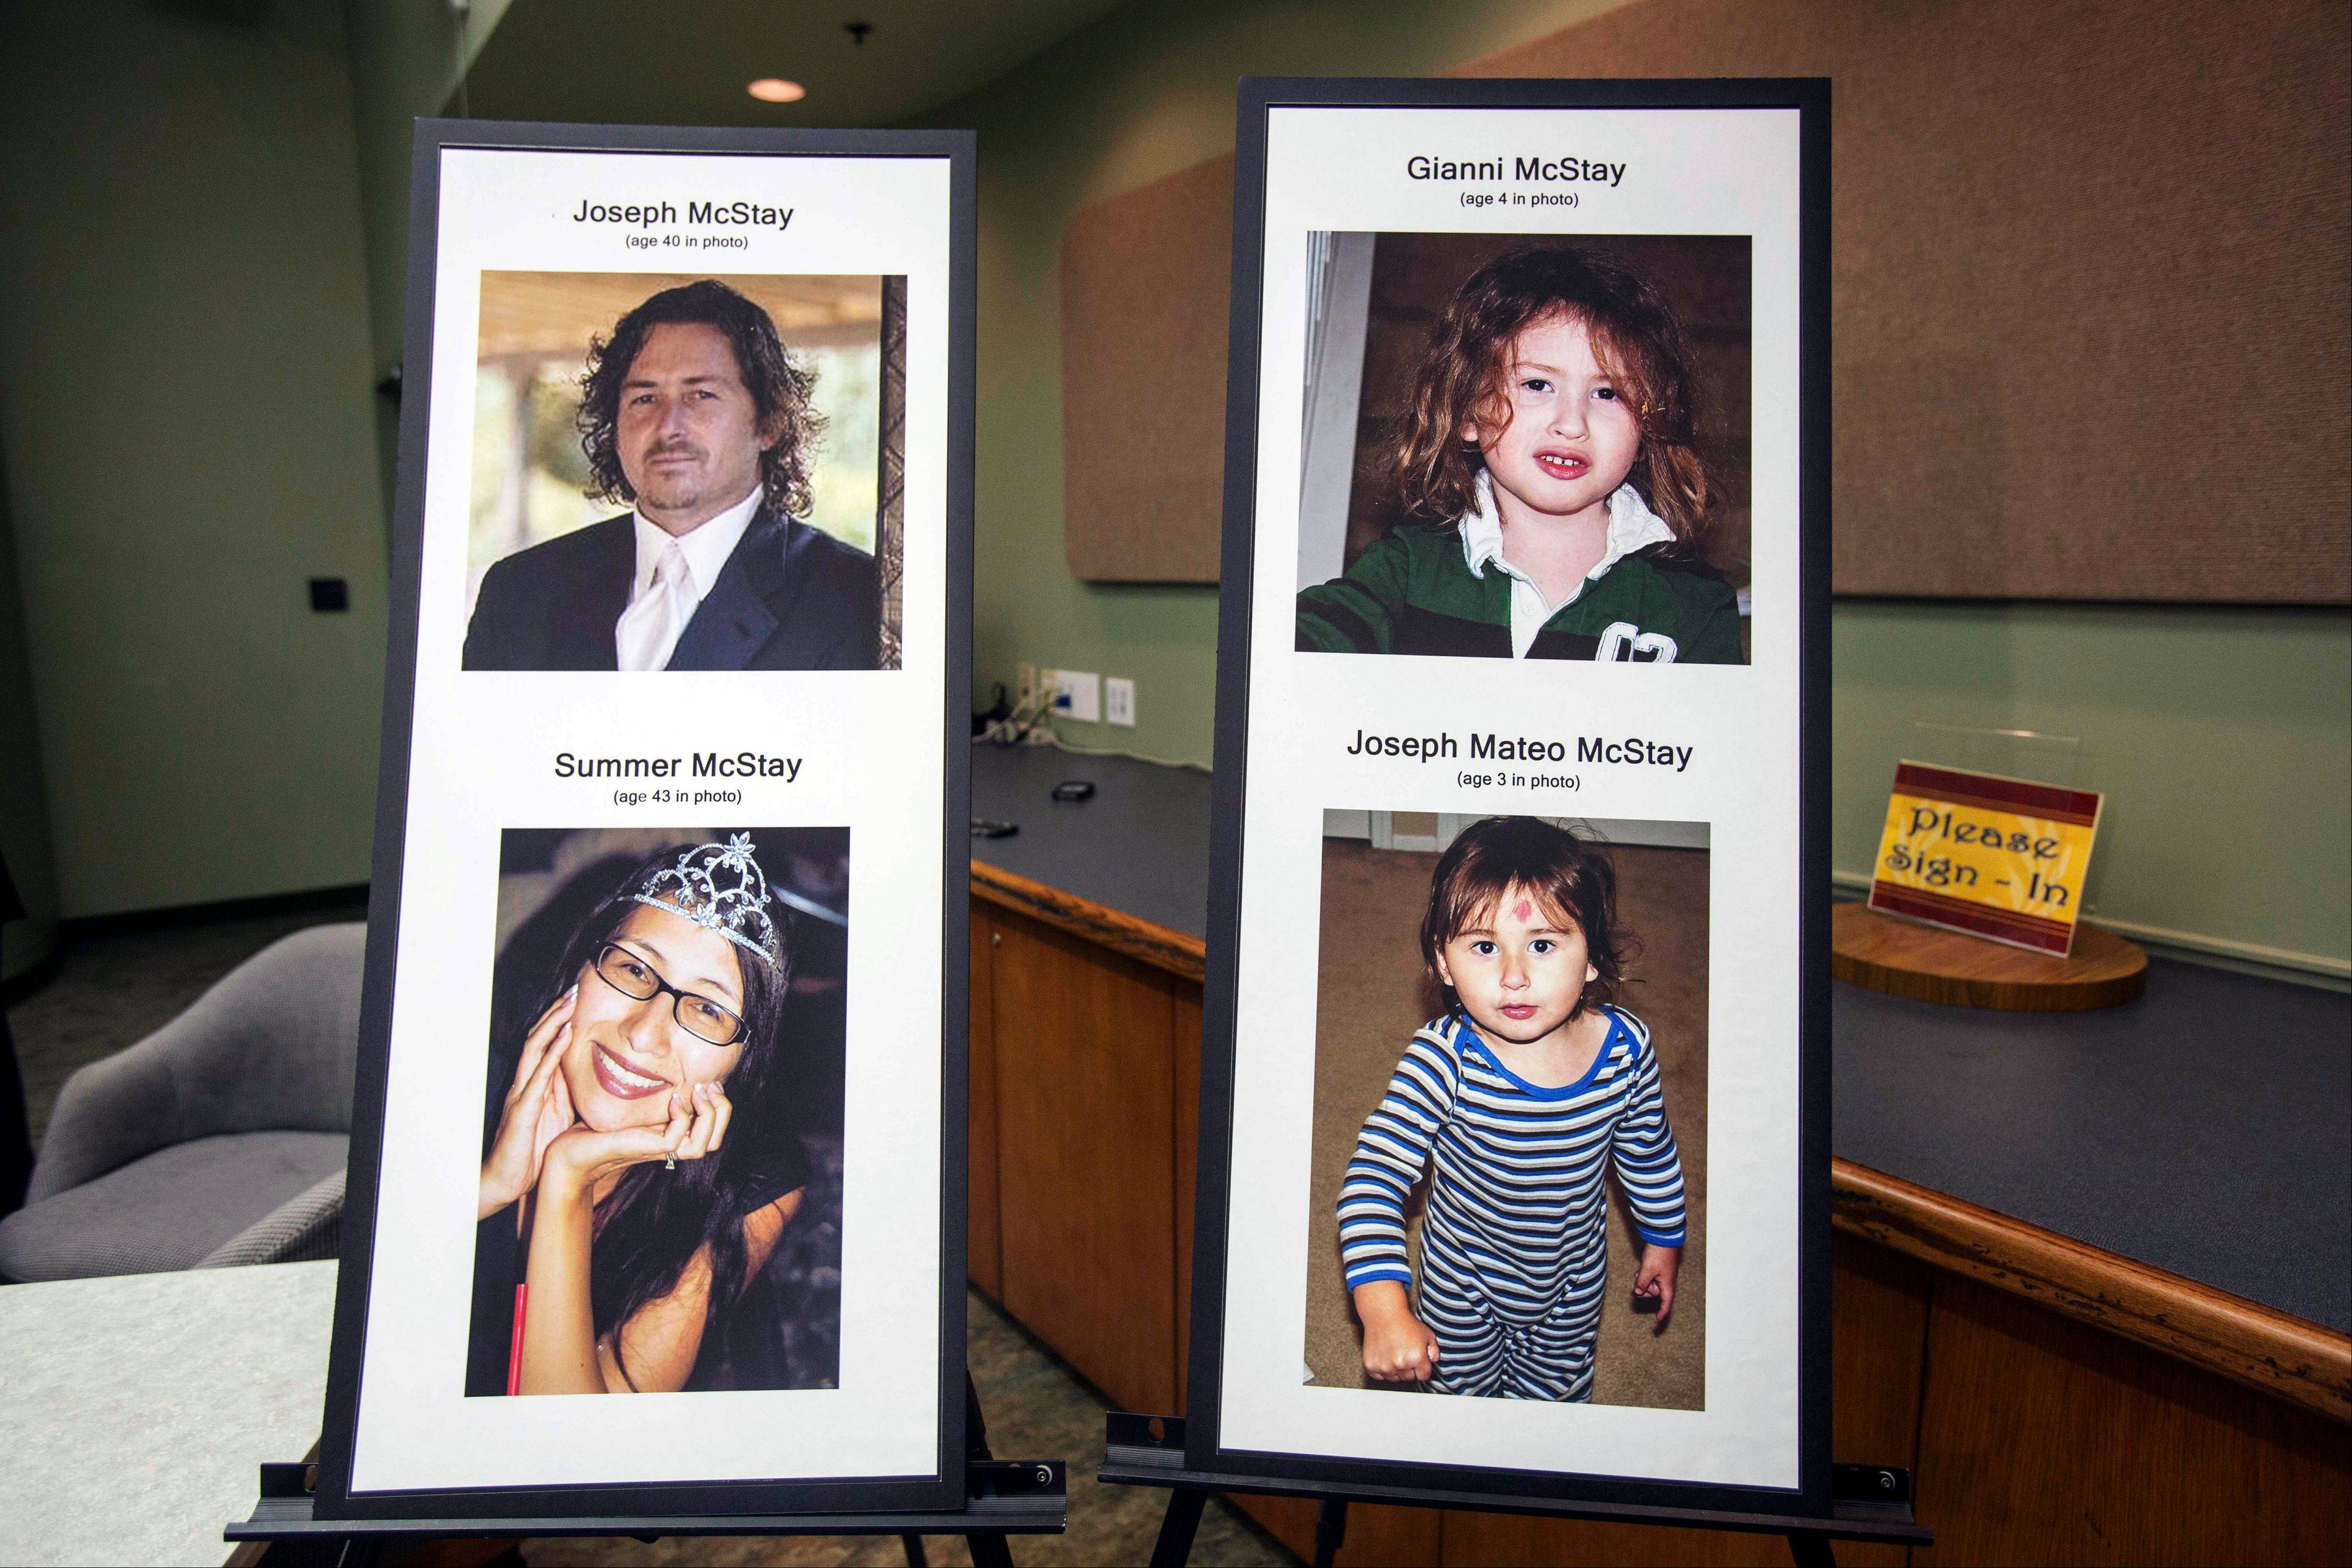 This photo display at a press conference at the San Bernardino County Sheriffís Department headquarters in San Bernadino, Calif., shows Joseph and Summer McStay, and their children Gianni and Joseph Mateo, who disappeared in 2010 from their San Diego home.